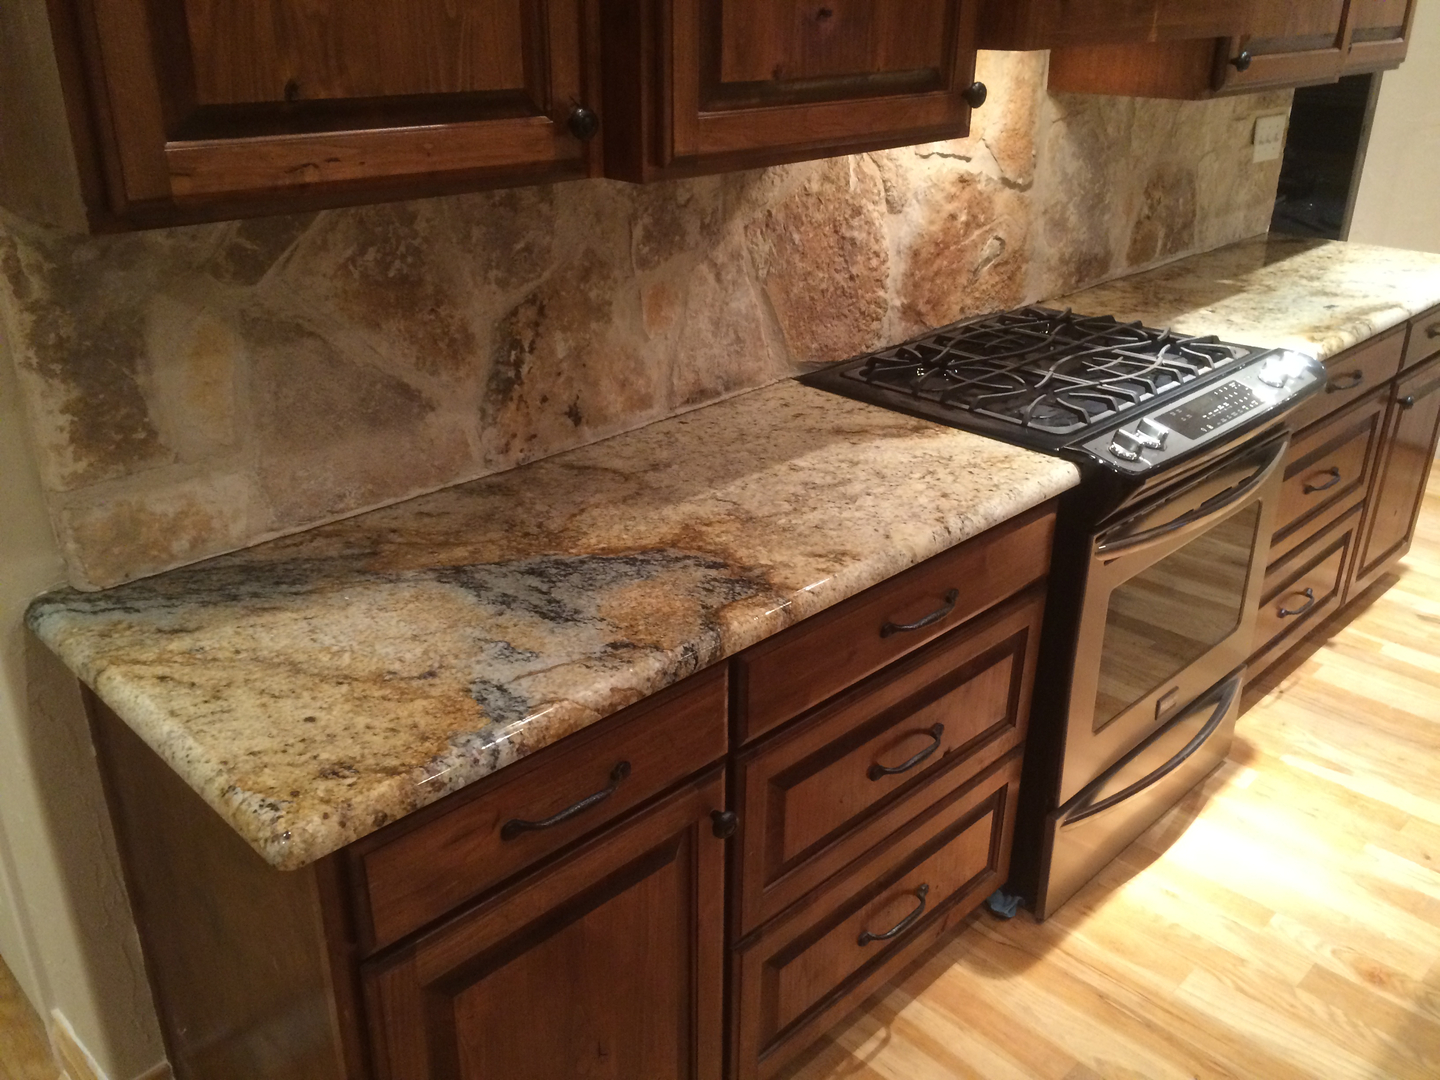 Granite Countertops San Antonio - San Antonio Granite on dark cabinets with hardware, dark cabinets with backsplashes, dark granite countertops, dark marble countertops, dark grey countertops, dark cabinets black countertop, dark color laminate countertops, dark floors light cabinets dark countertops, dark cabinets with quartz,